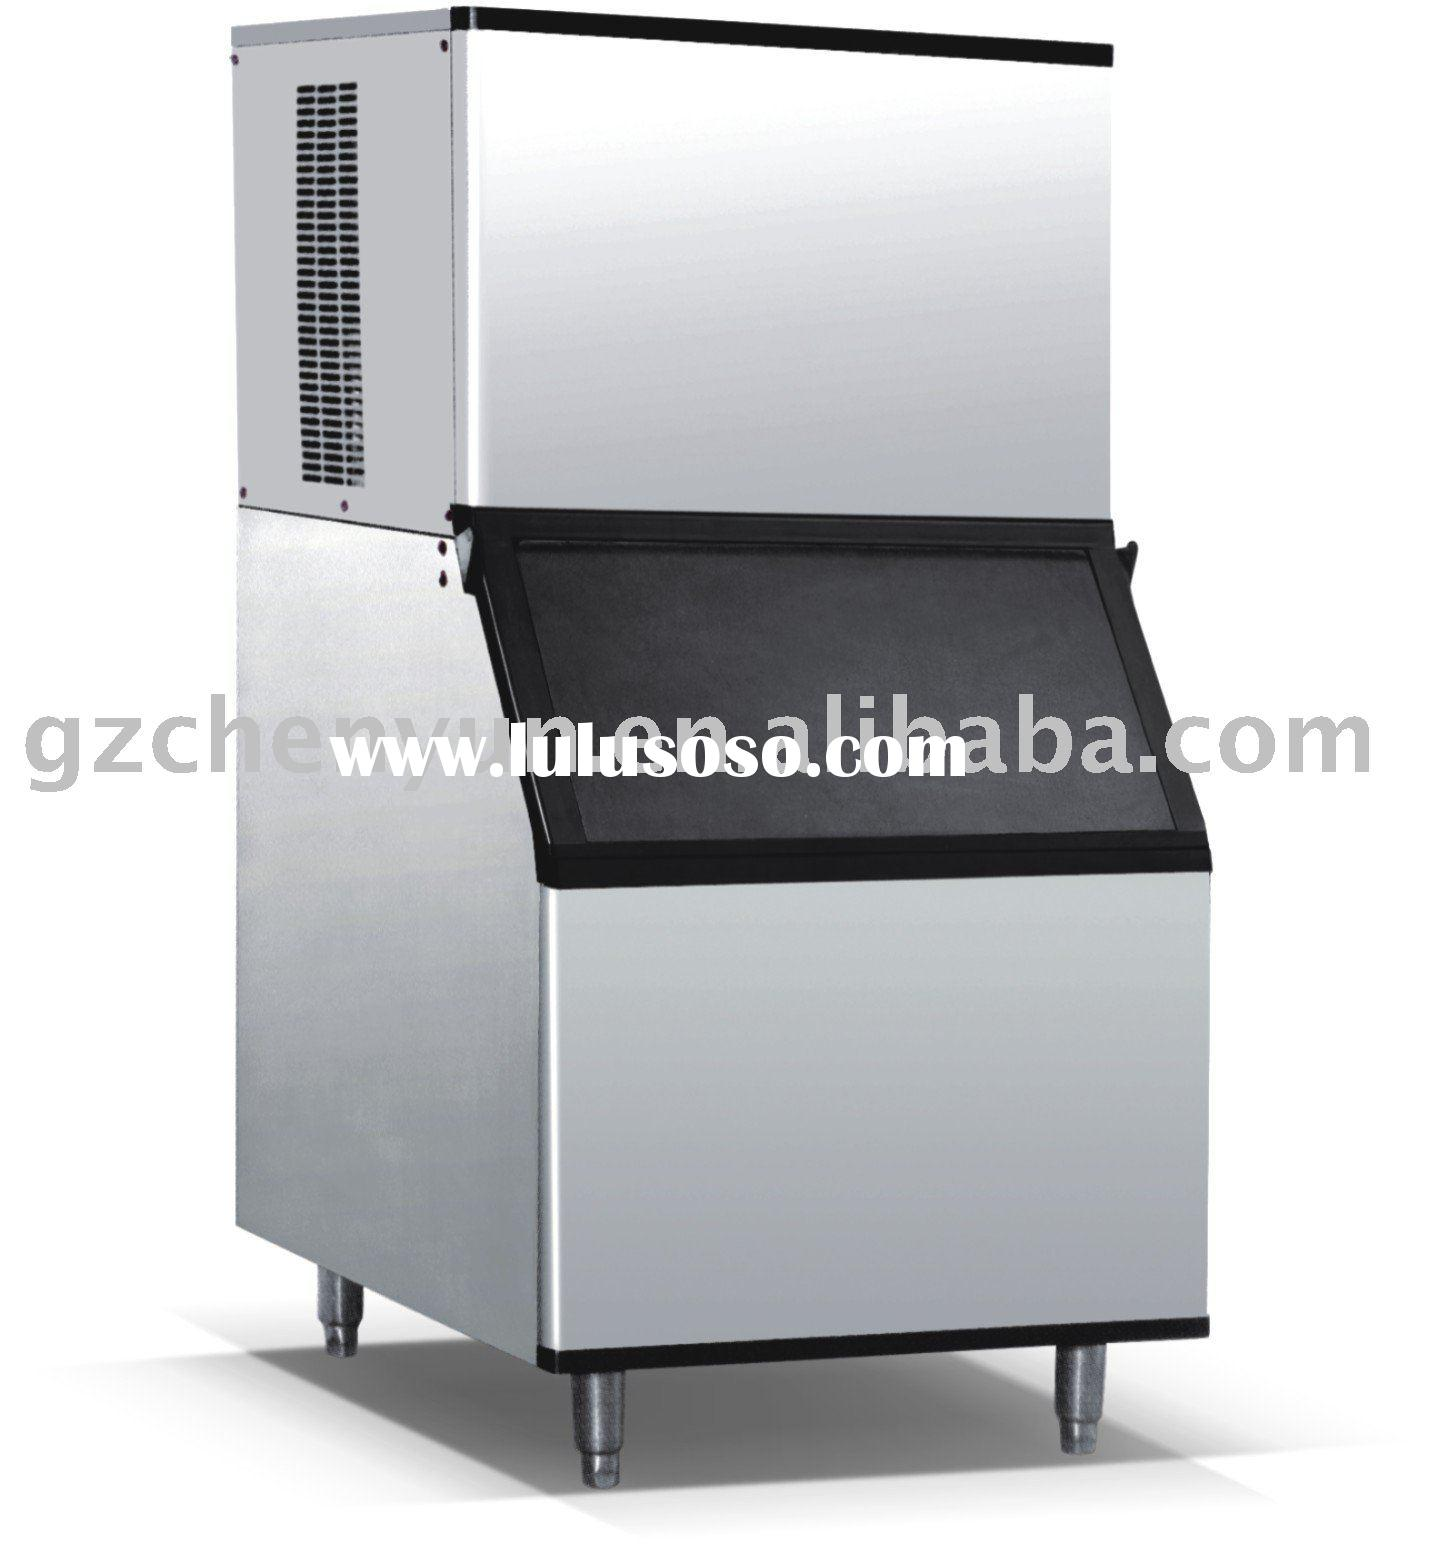 Cake Showcase Chiller Refrigerated Cake Showcase For Sale